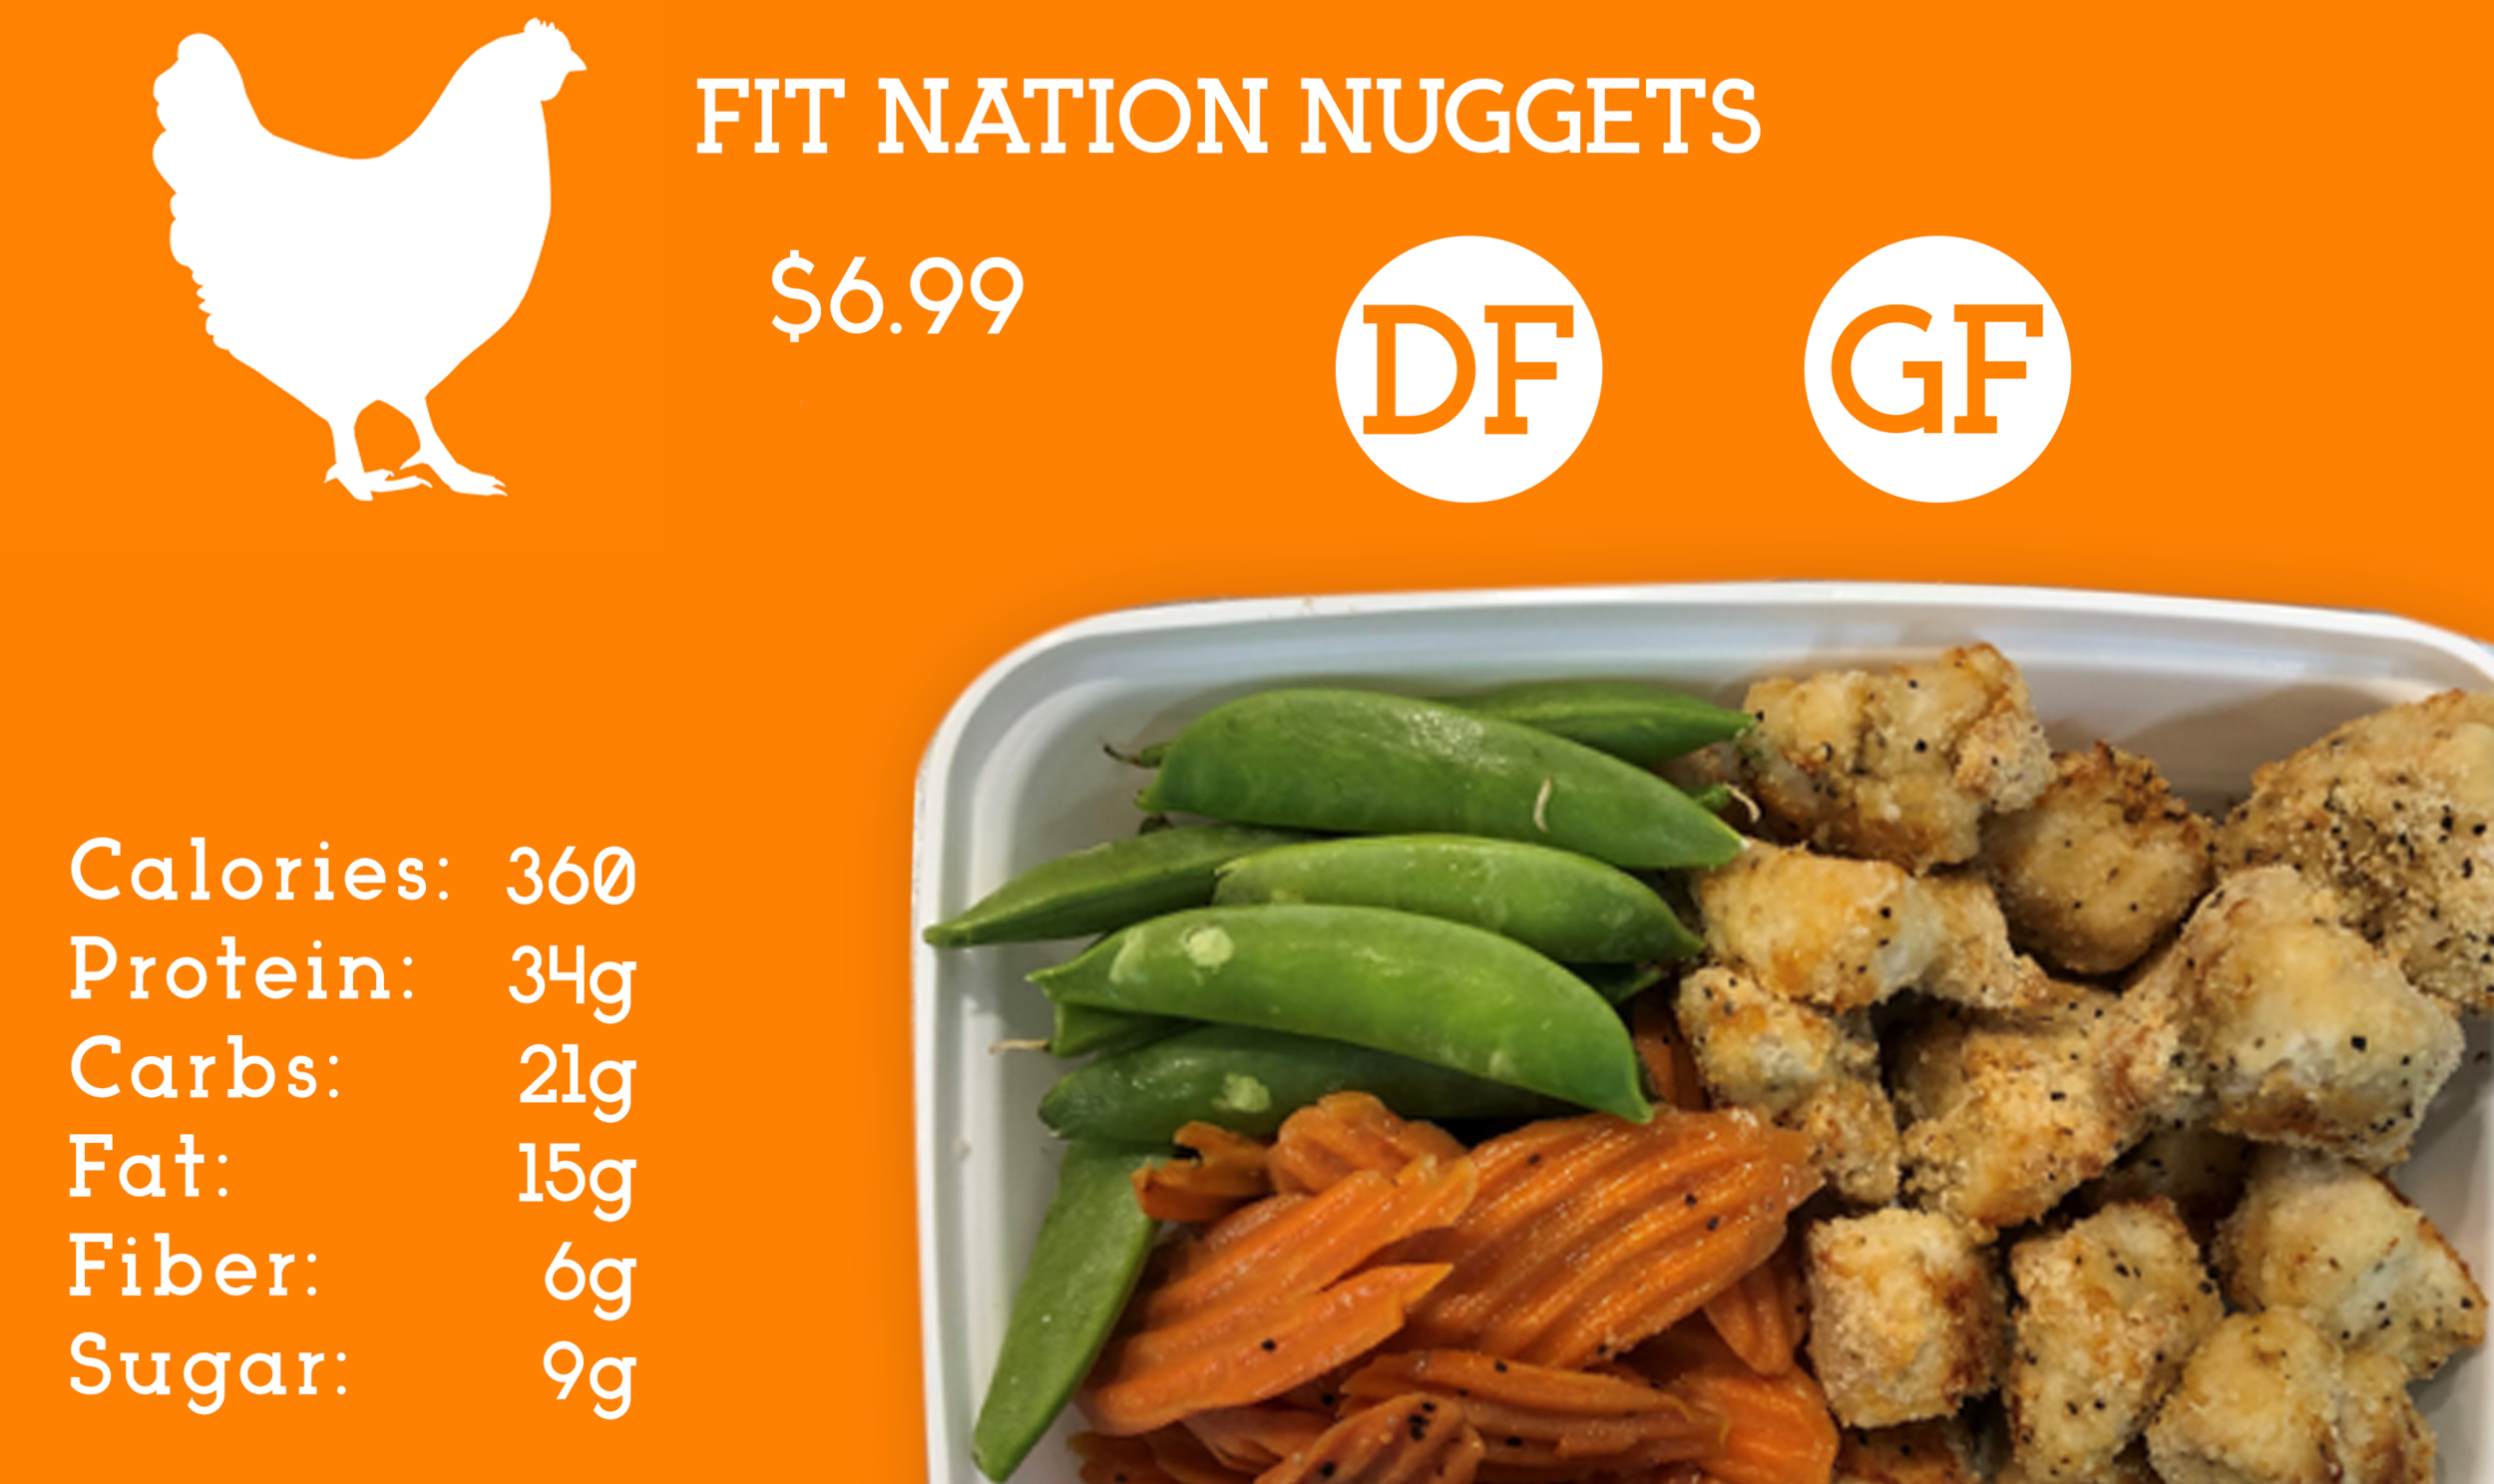 Fit Nation Nuggets